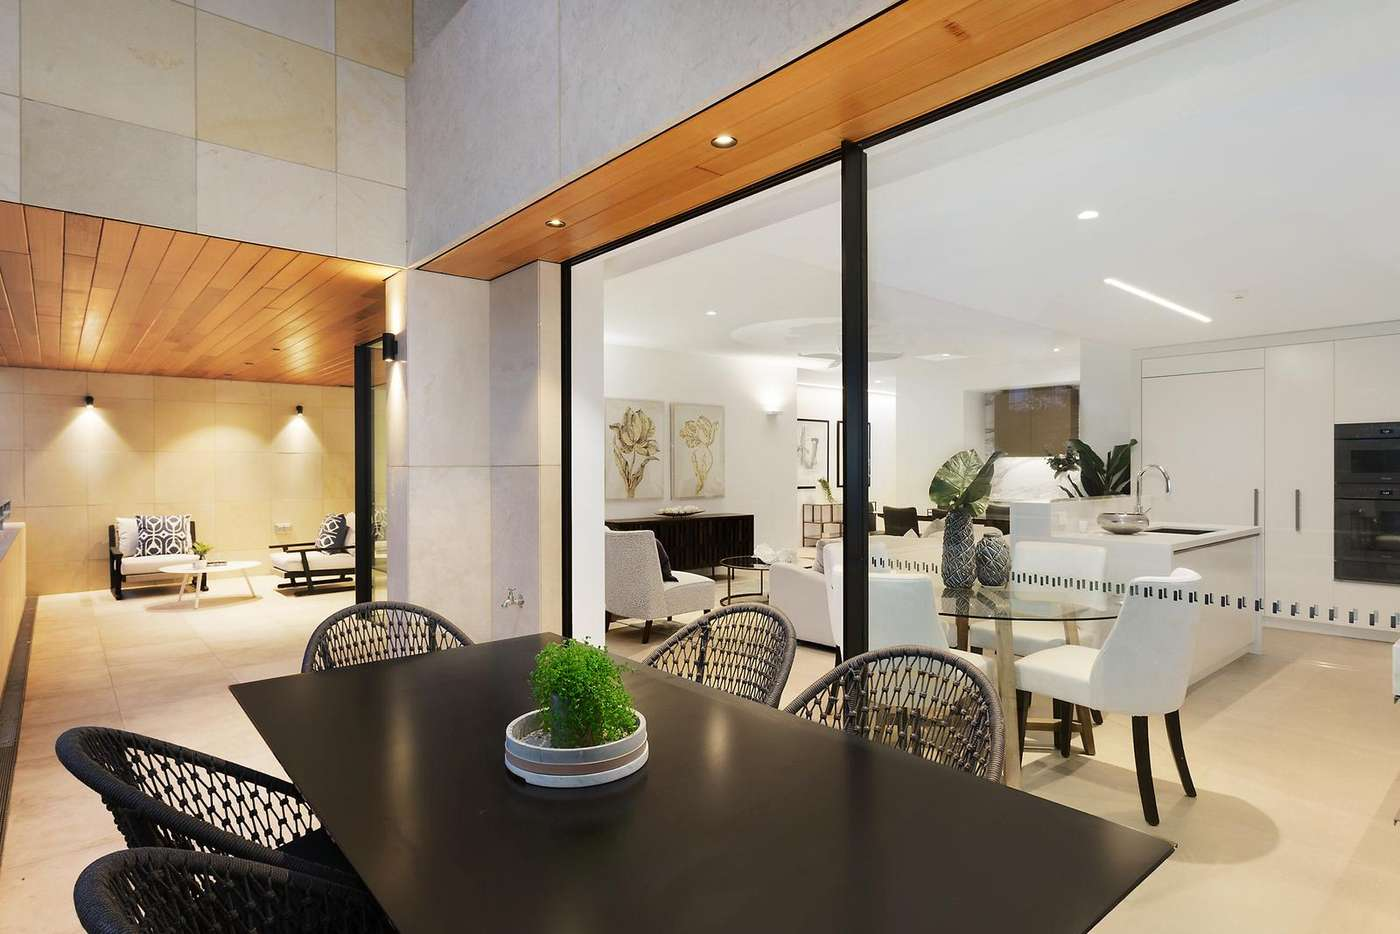 Main view of Homely apartment listing, 101/3 East Crescent Street, Mcmahons Point NSW 2060